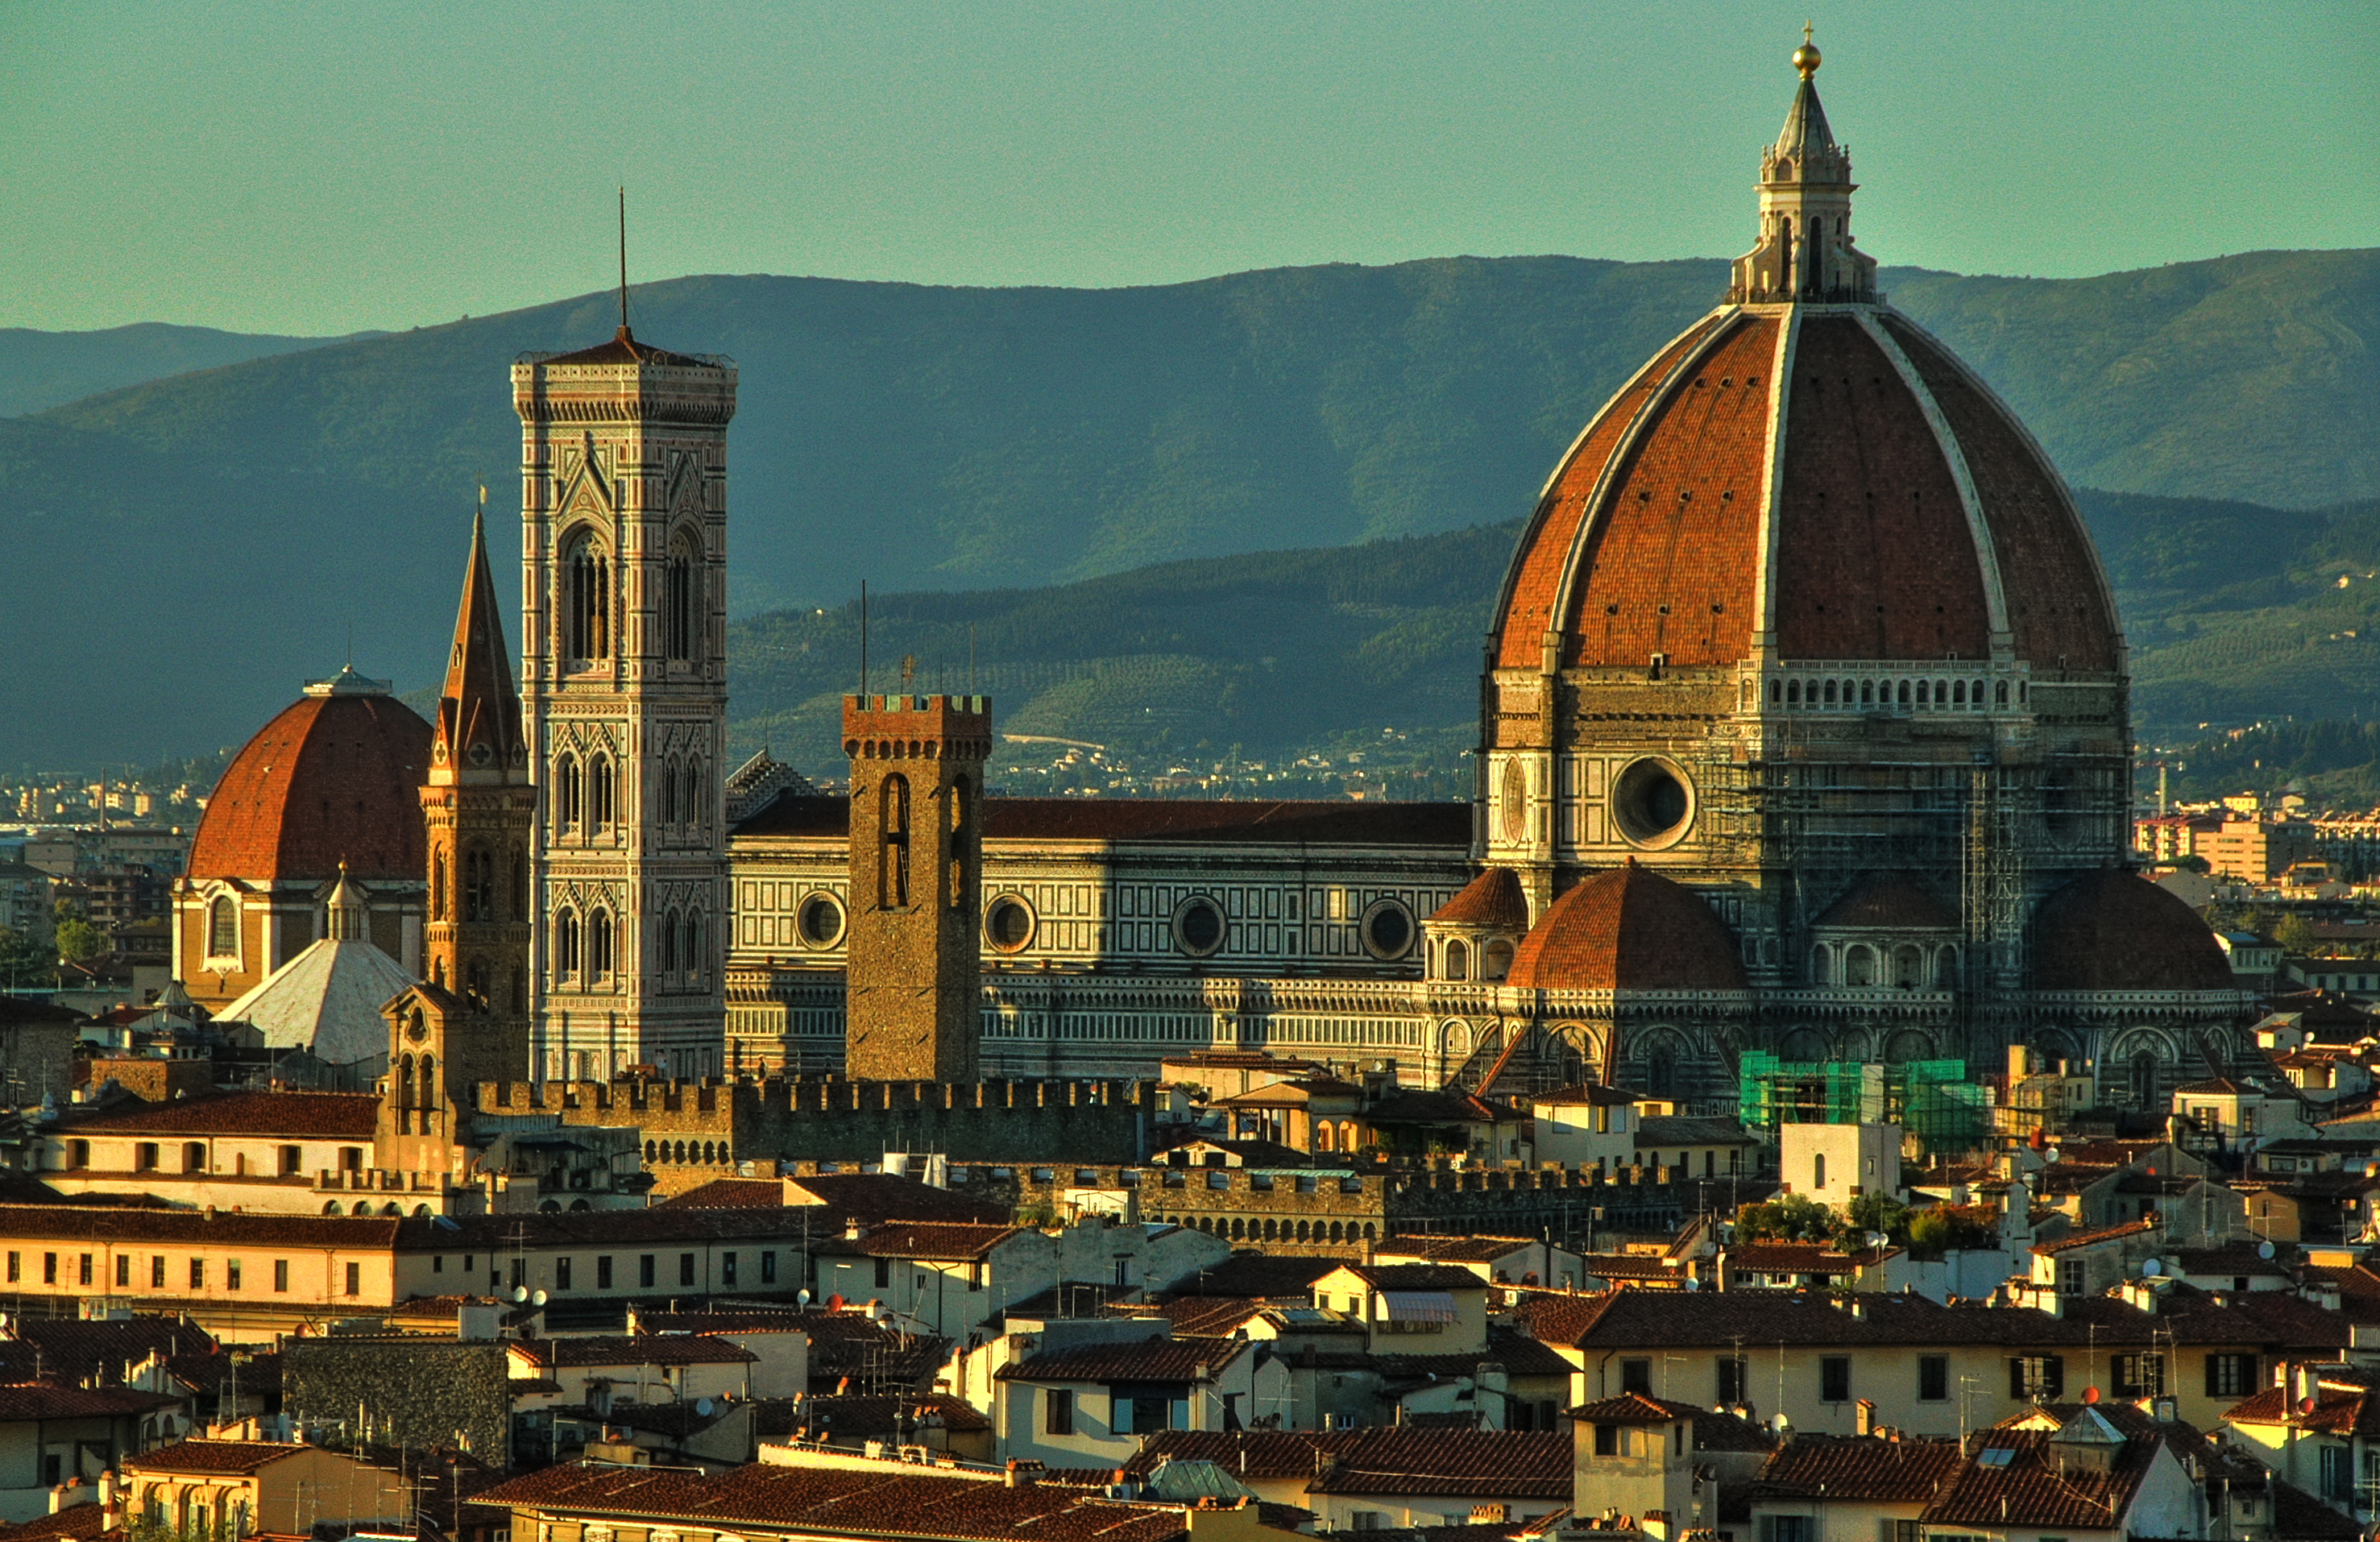 brunelleschis dome essay Brunelleschi's dome, and the cathedral it covers, is one of florence's most recognized landmarks it dominates the skyline, still the tallest building in florence over 600 years after it was built.